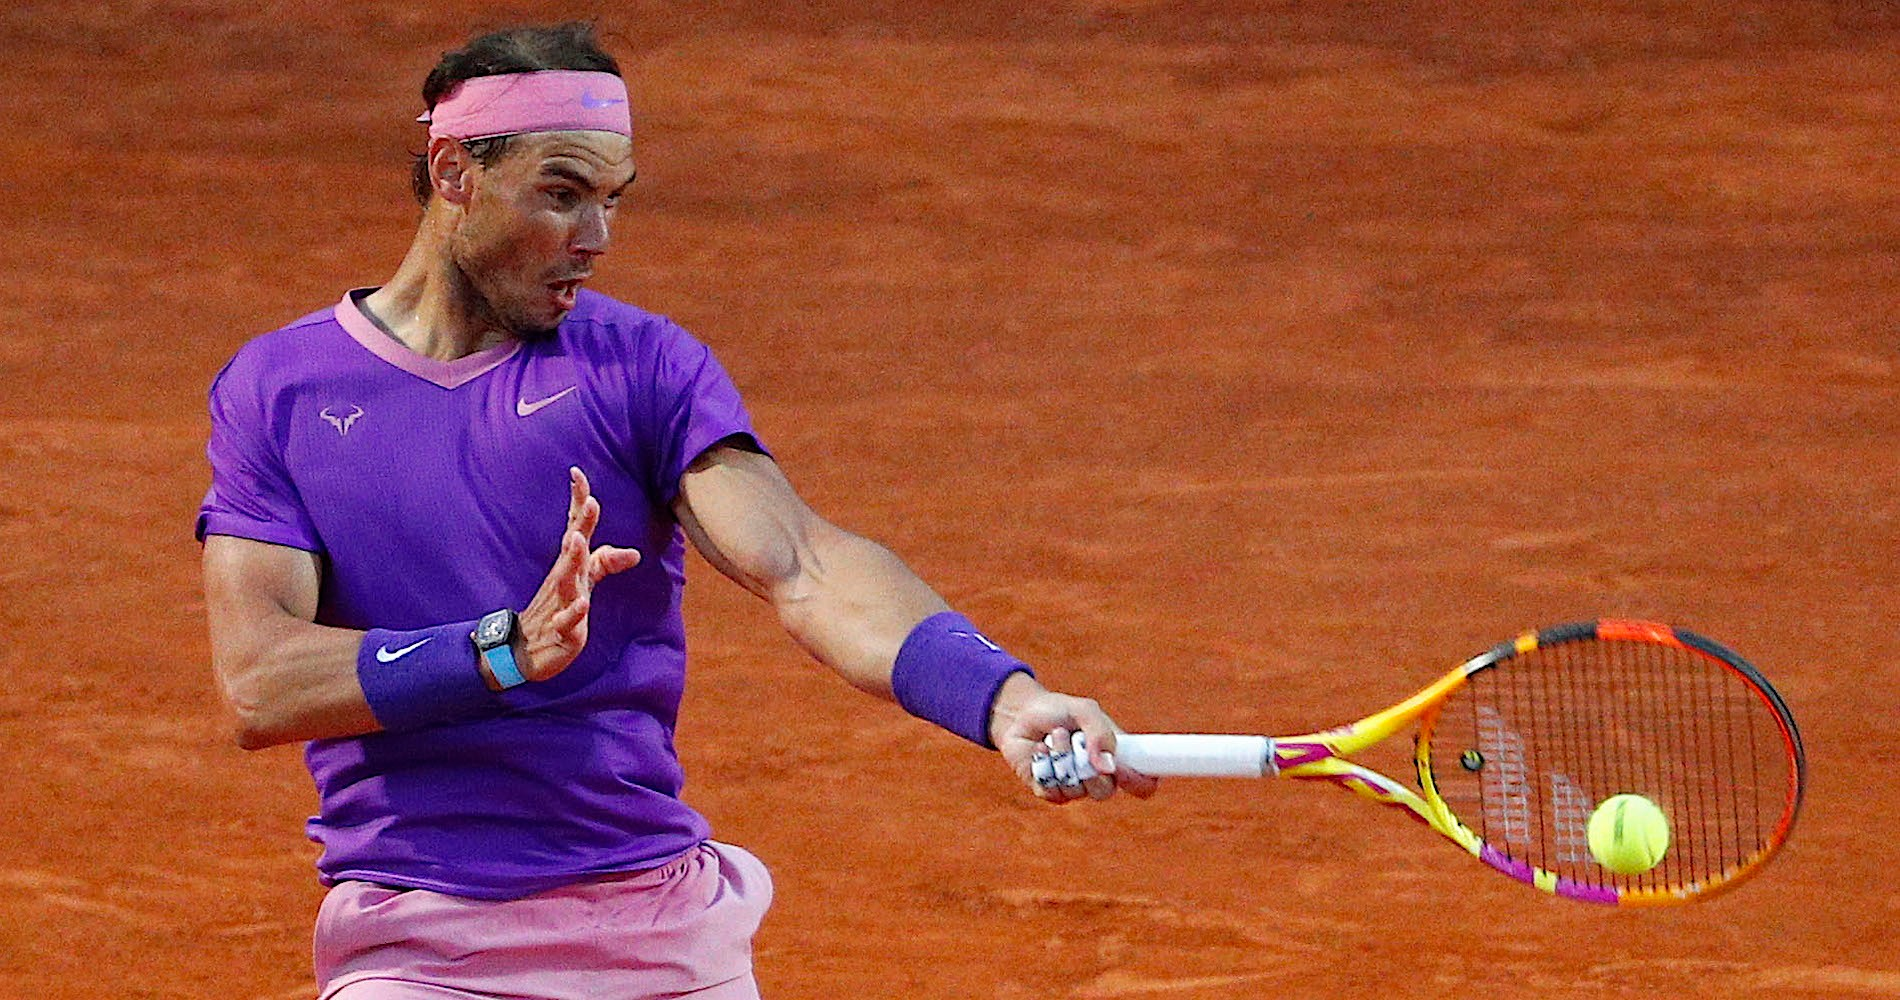 Rafael Nadal in action during his round of 32 match against Italy's Jannik Sinner